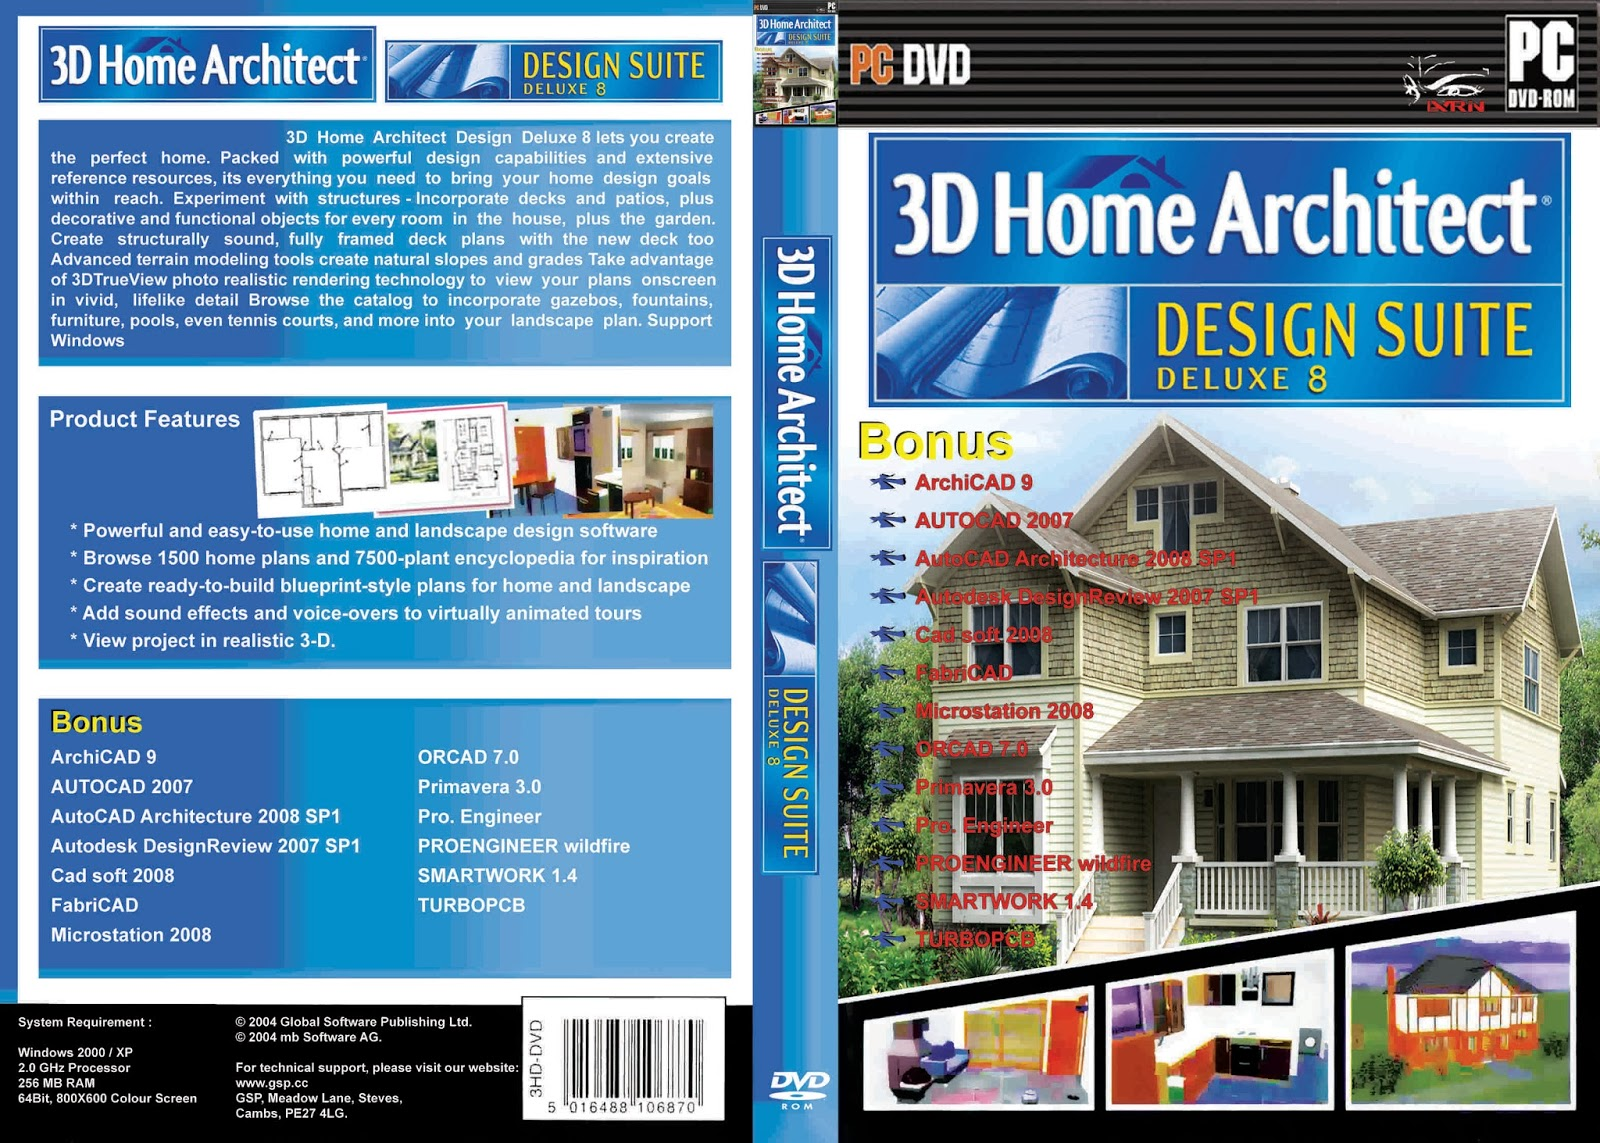 Genial 3d Home Architect Design Suite Deluxe 8 Rus Torrent